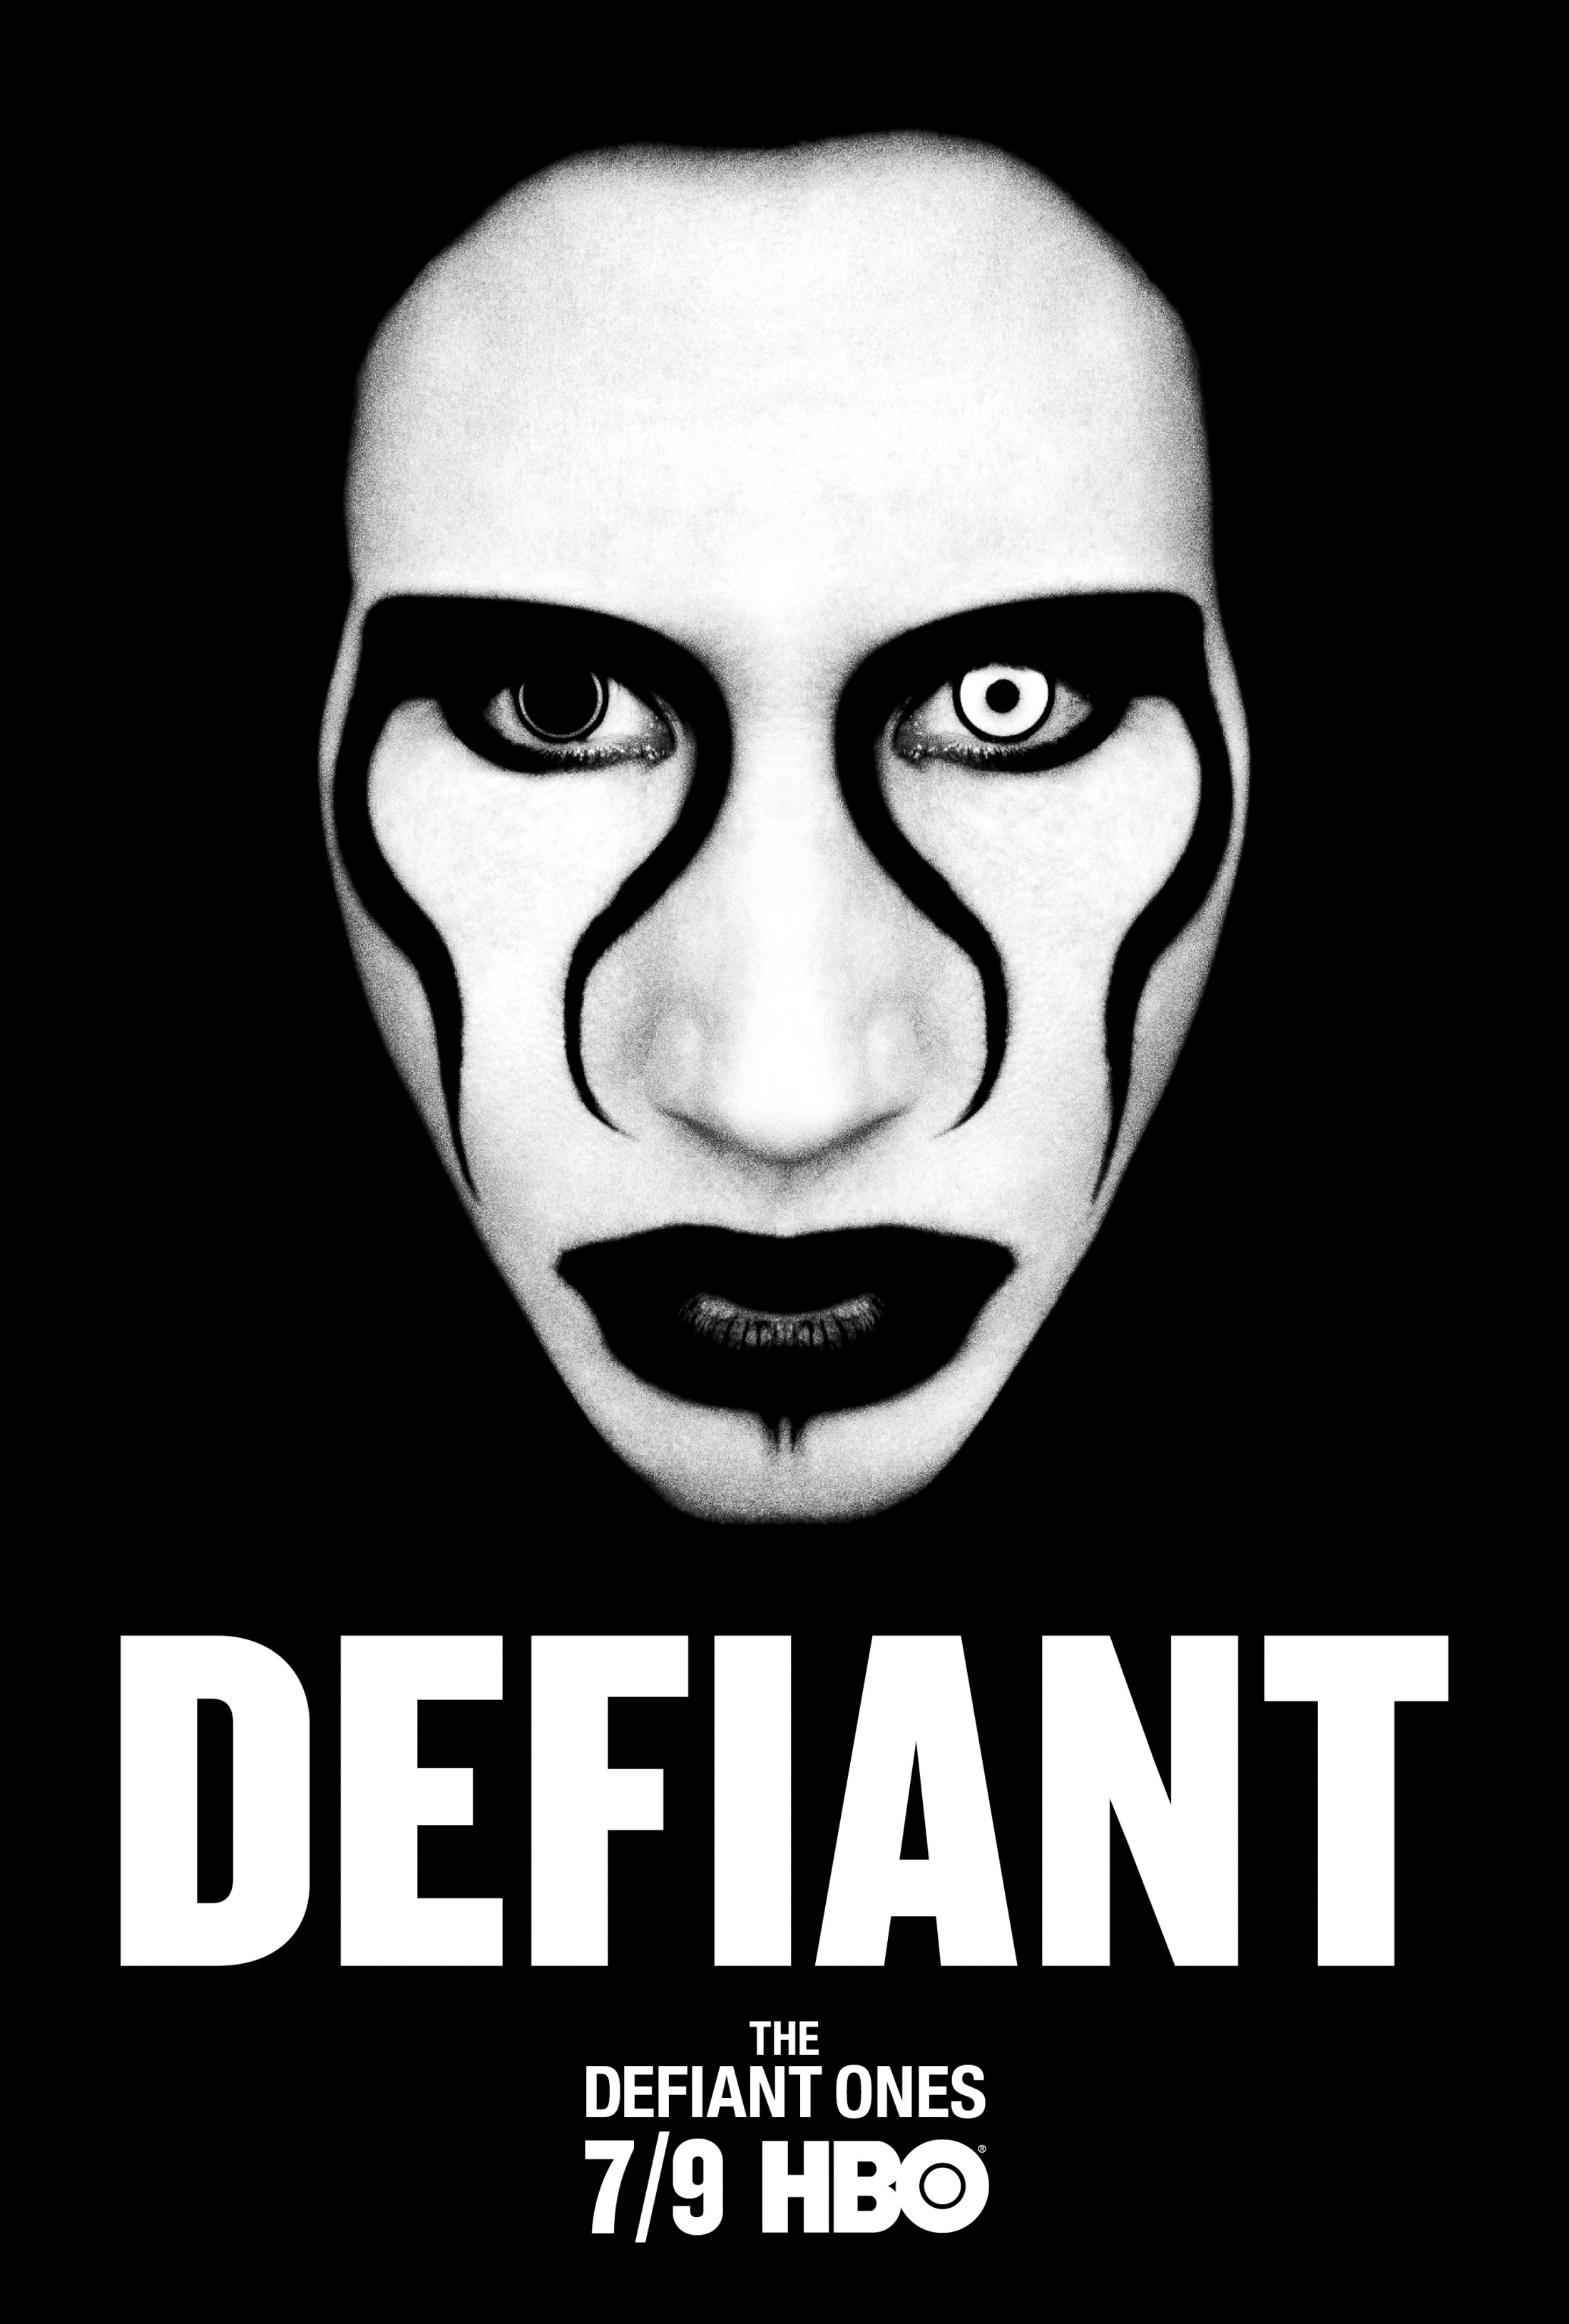 Image Media for The Defiant Ones Character Banner: Marilyn Manson